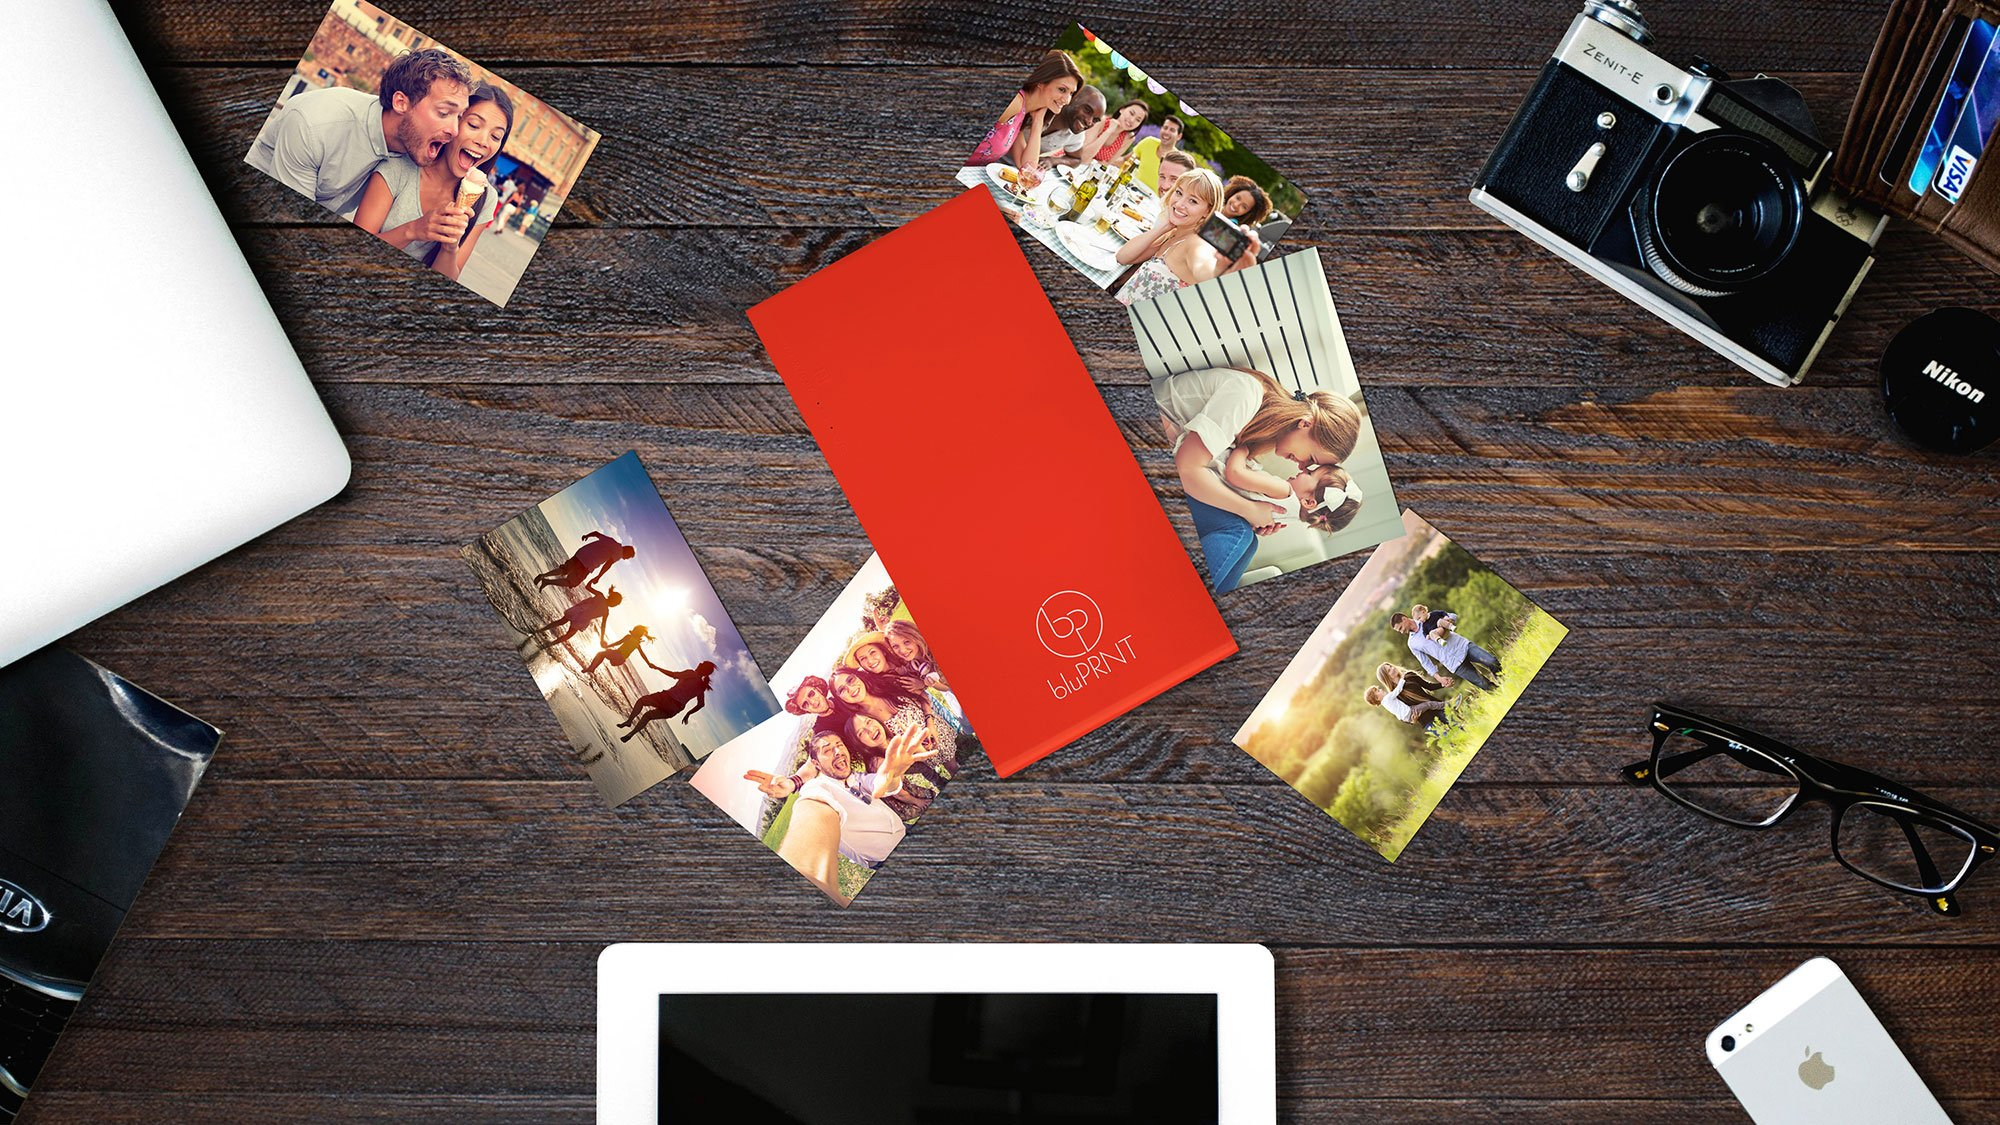 bluPRNT Instant Portable Printer for Smartphone Social Media Photos With WiFi & NFC, Compatible With only Android - Red by BluPrnt (Image #4)